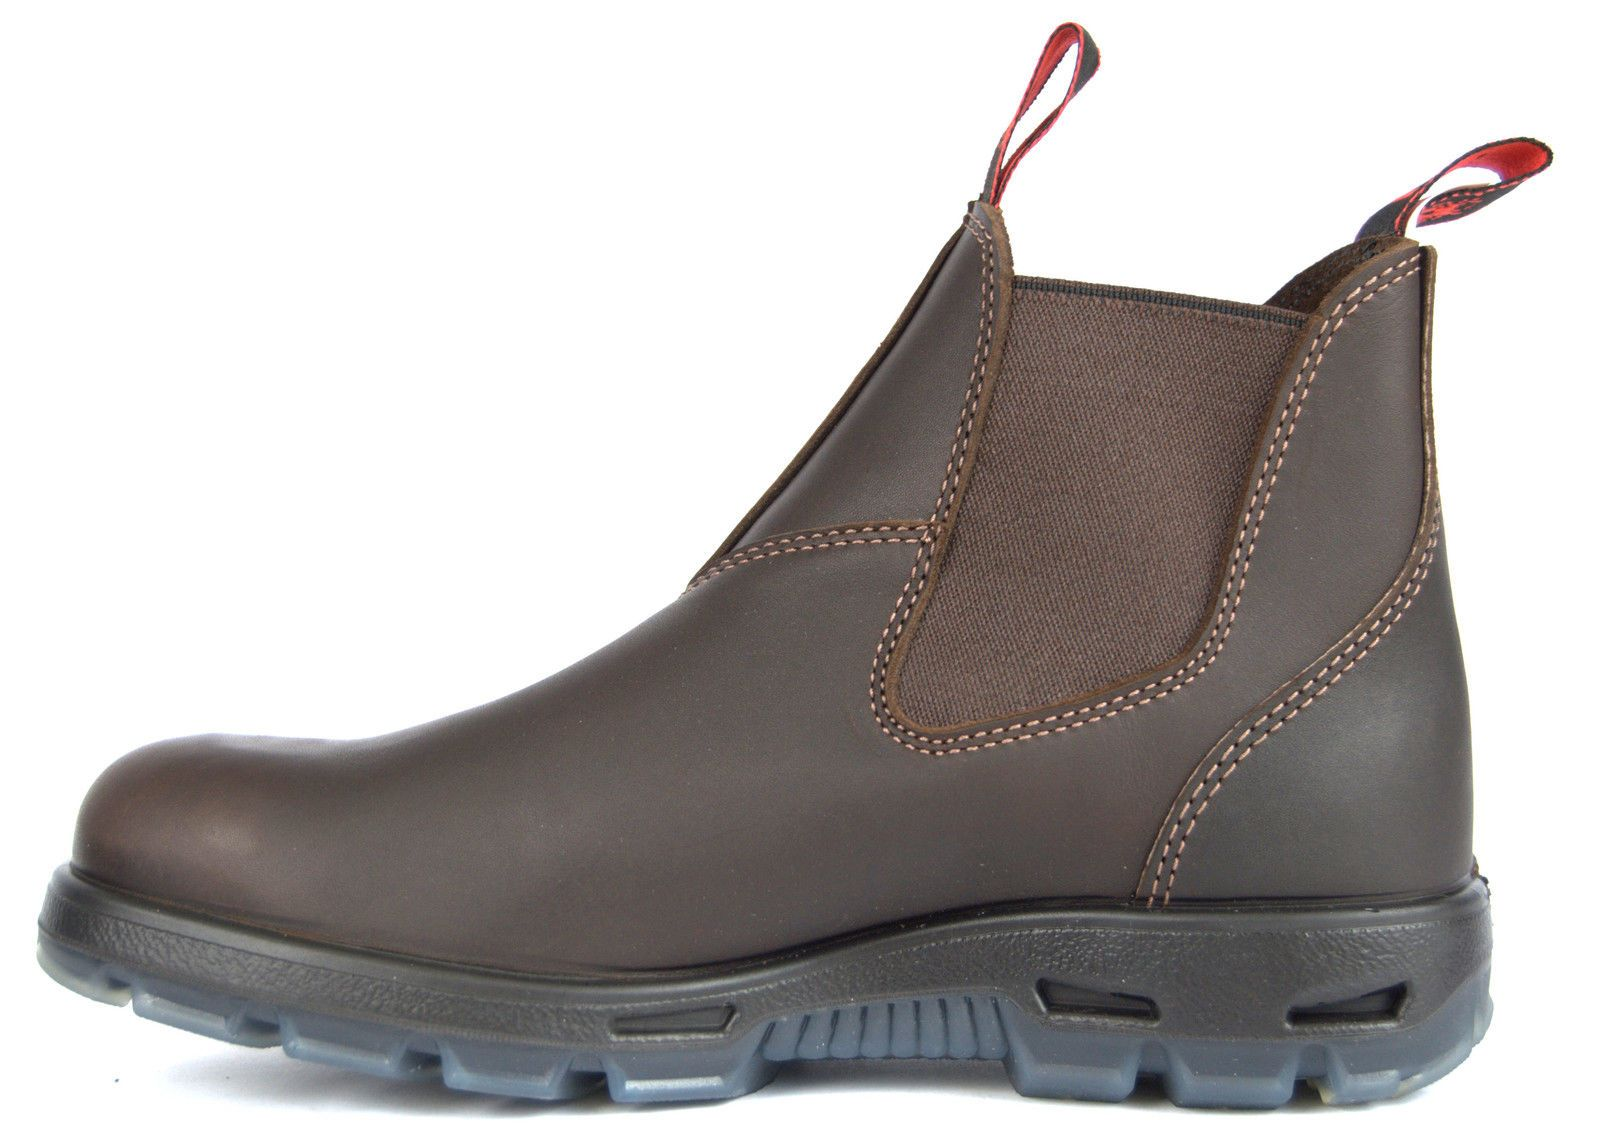 499c5606159 Redback Boots USA (redbackboots) on Pinterest